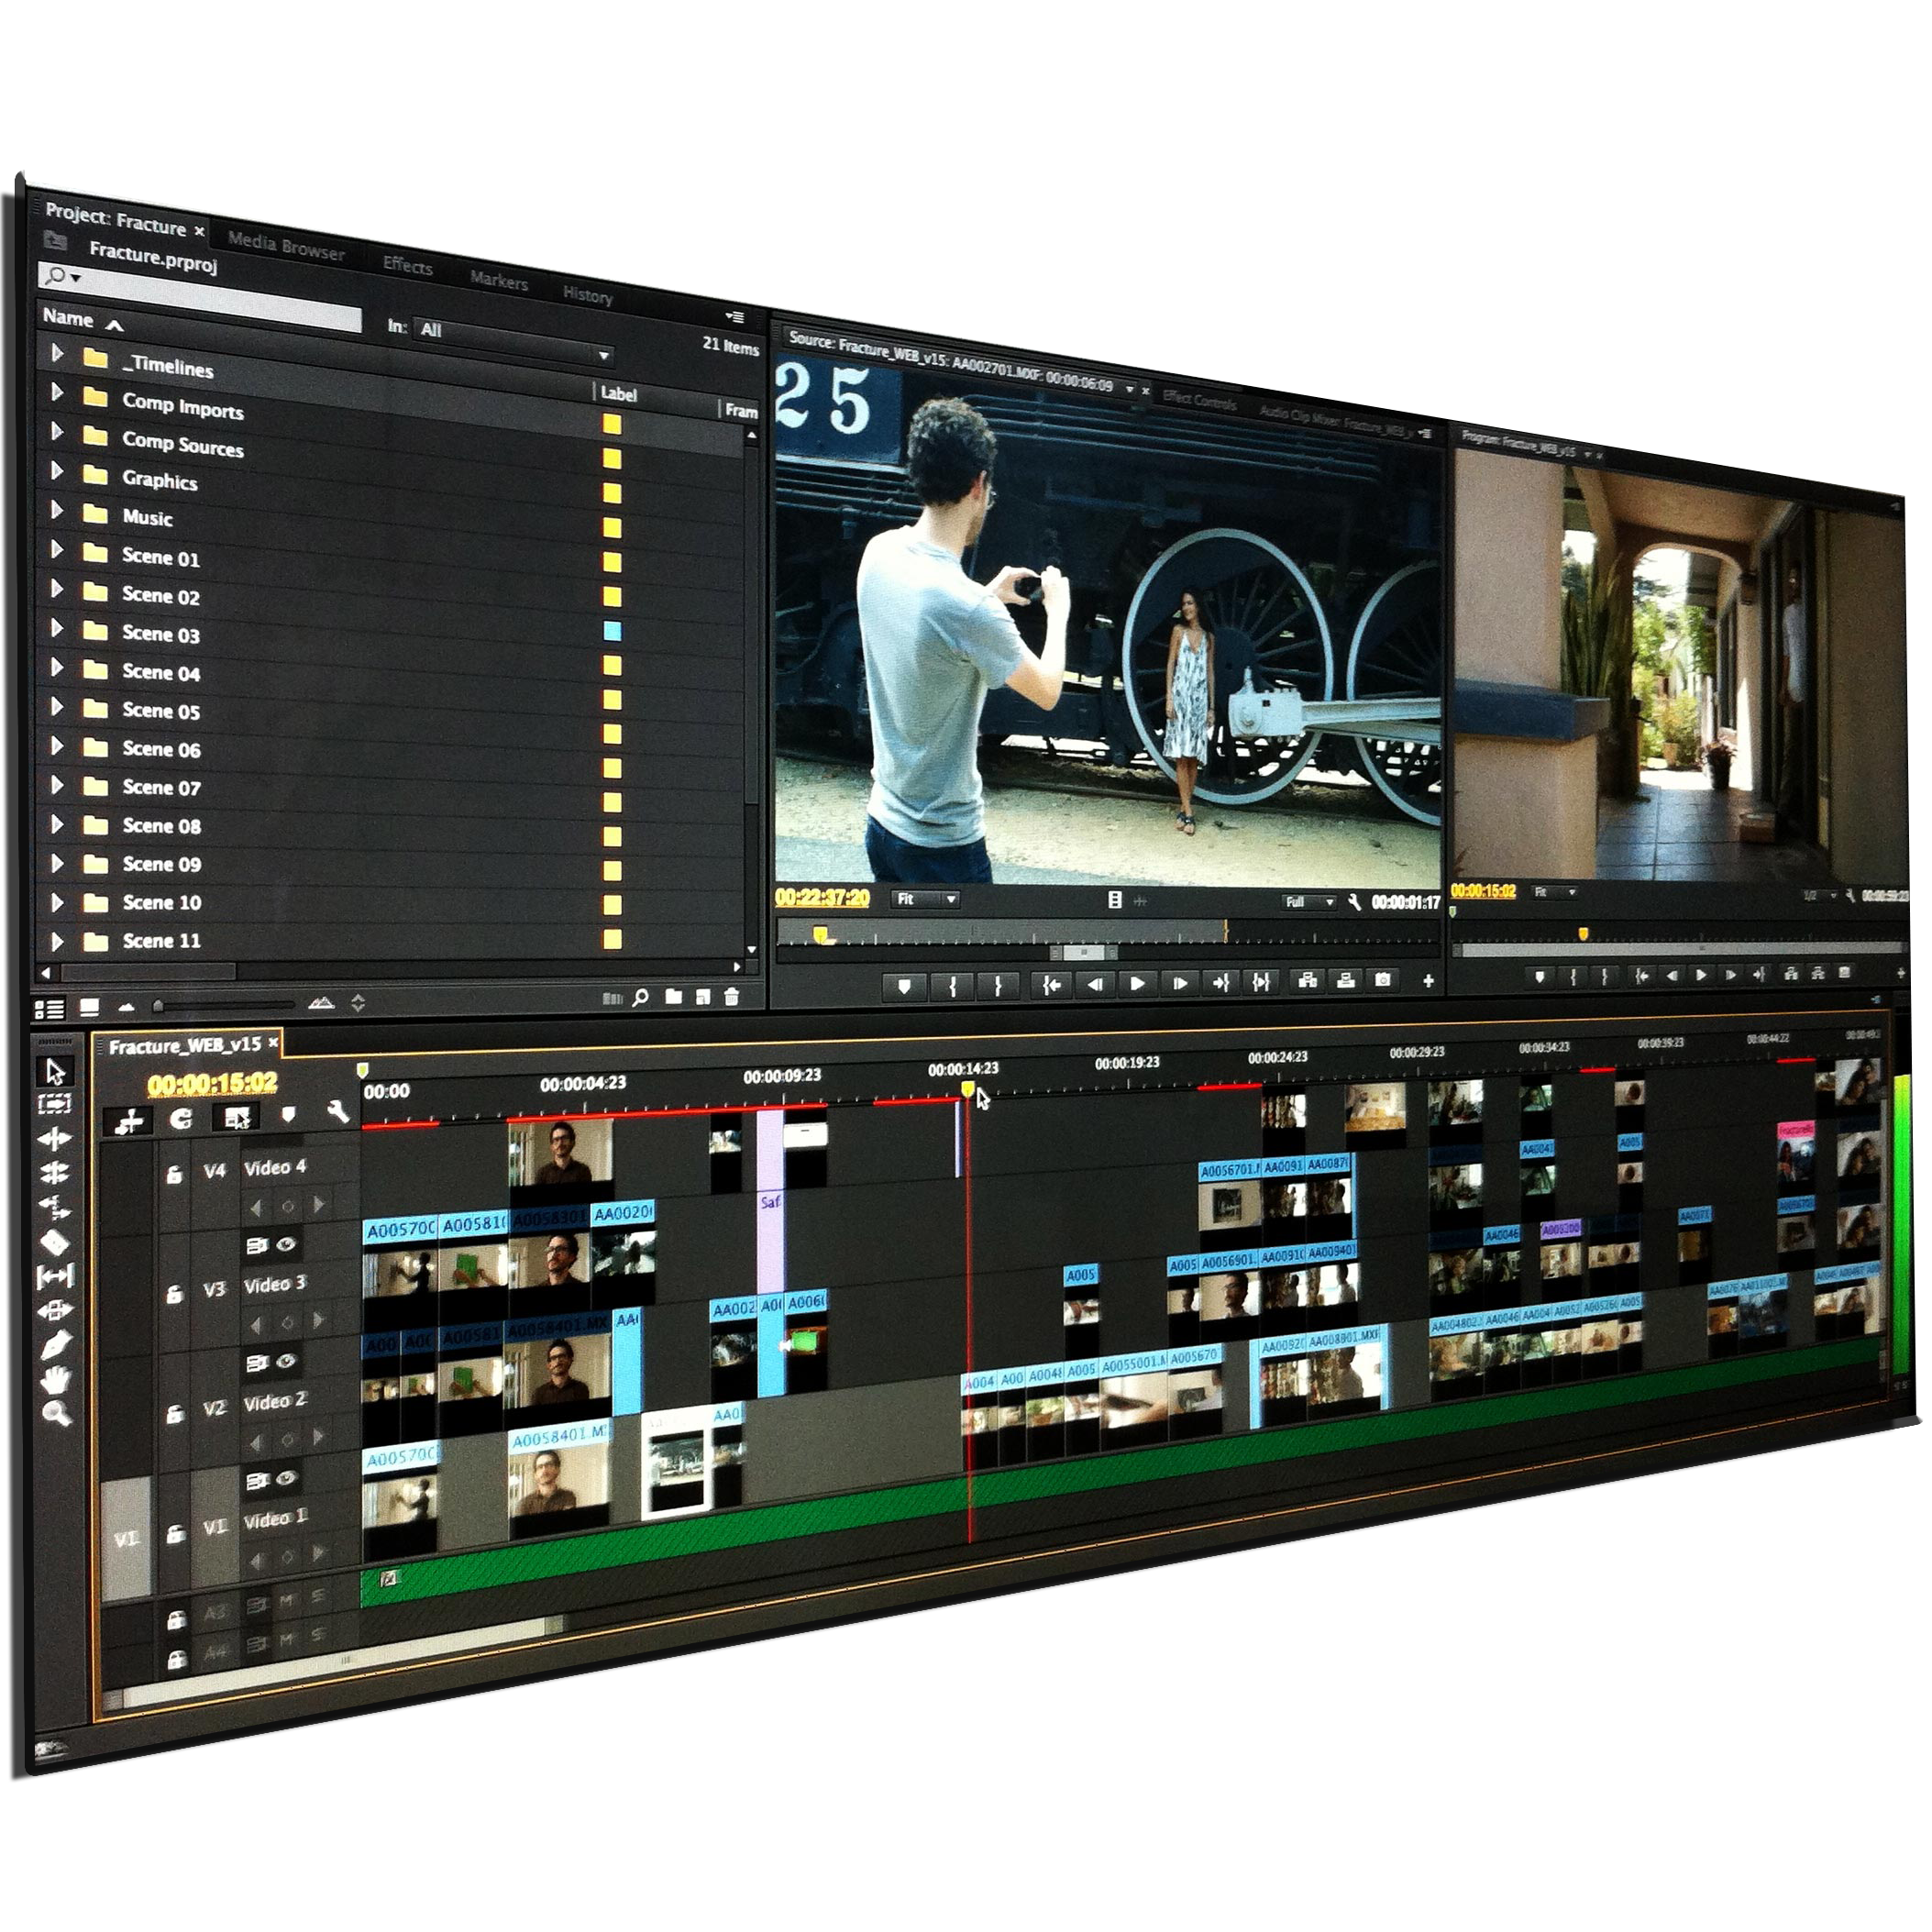 We have a complete non-linear editing facility to piece together raw footage into a cohesive video story